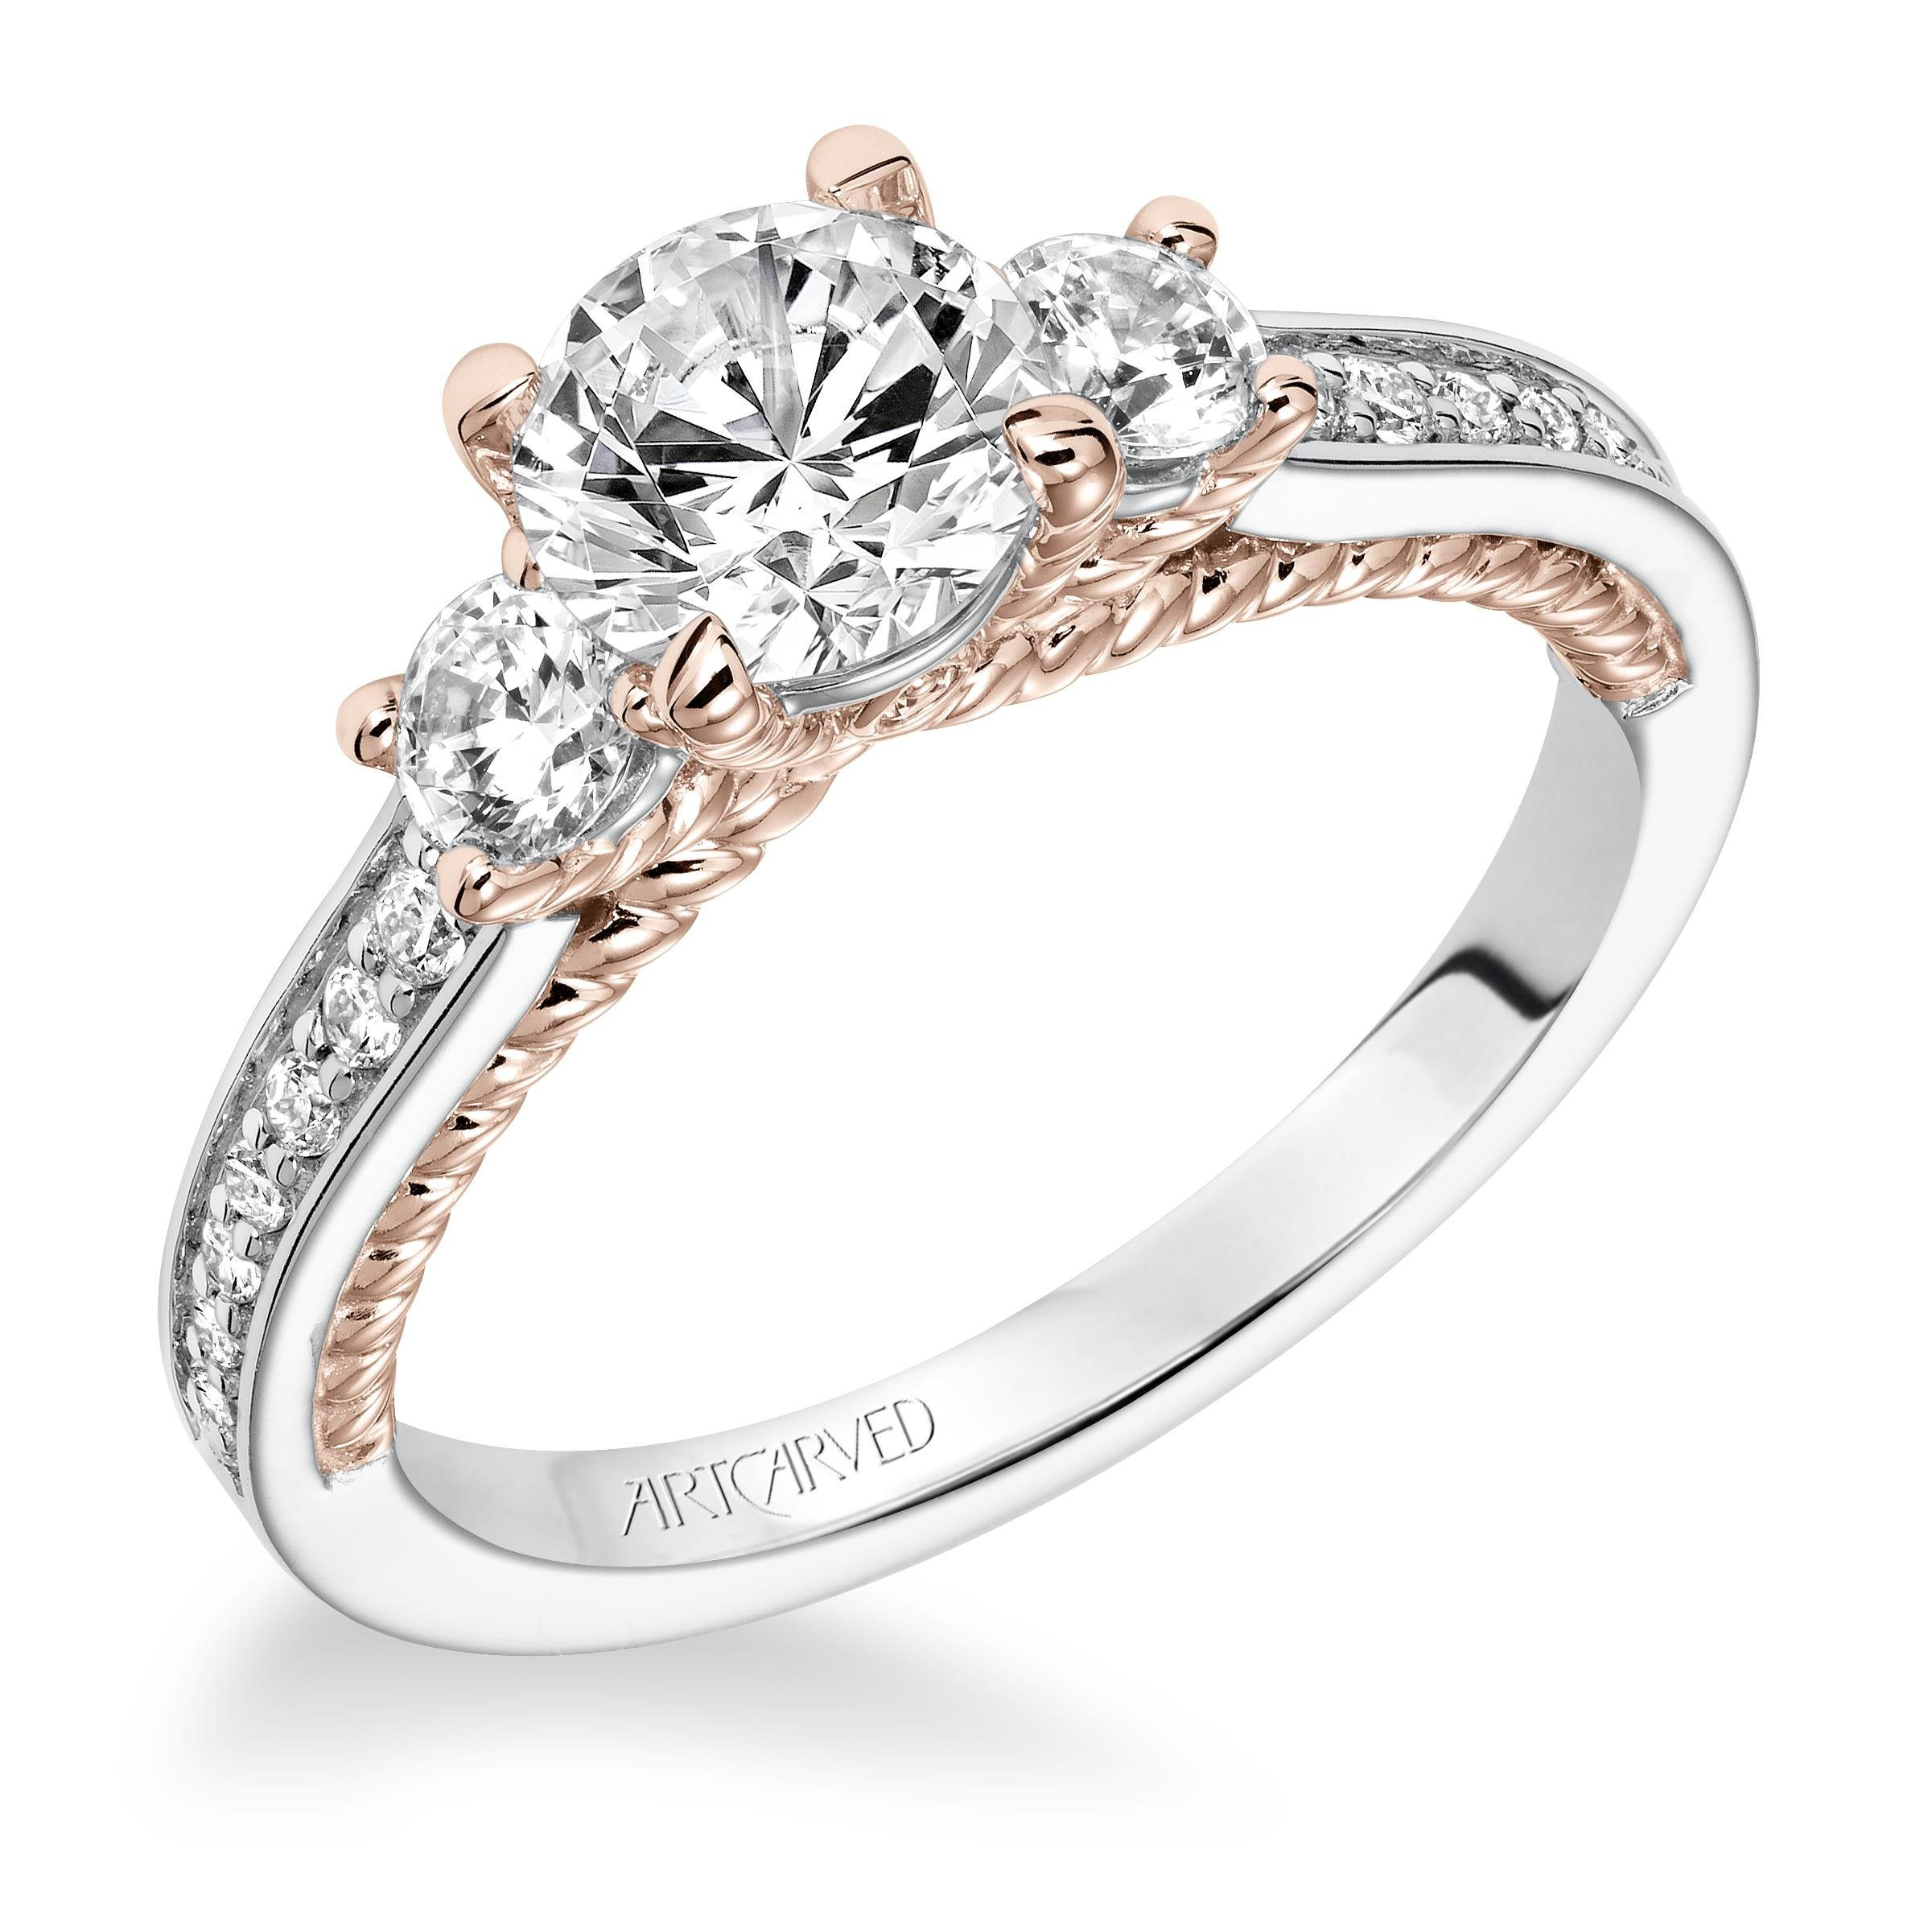 for luxury que beautiful goes engagement bands three diamond jewelry of band stone ring rings with lovely wedding